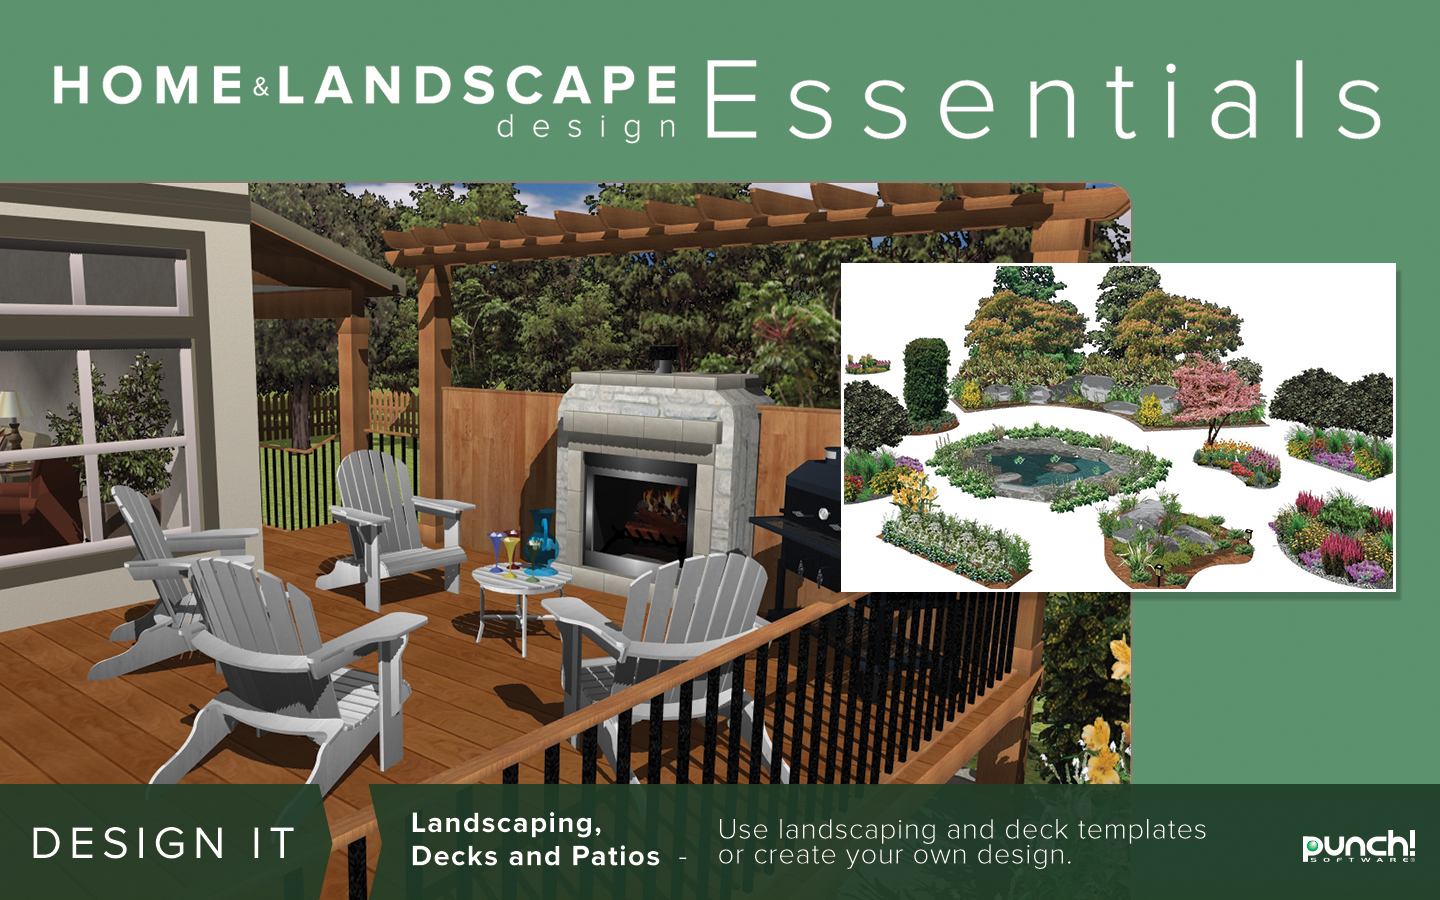 punch home landscape design essentials v19 for windows